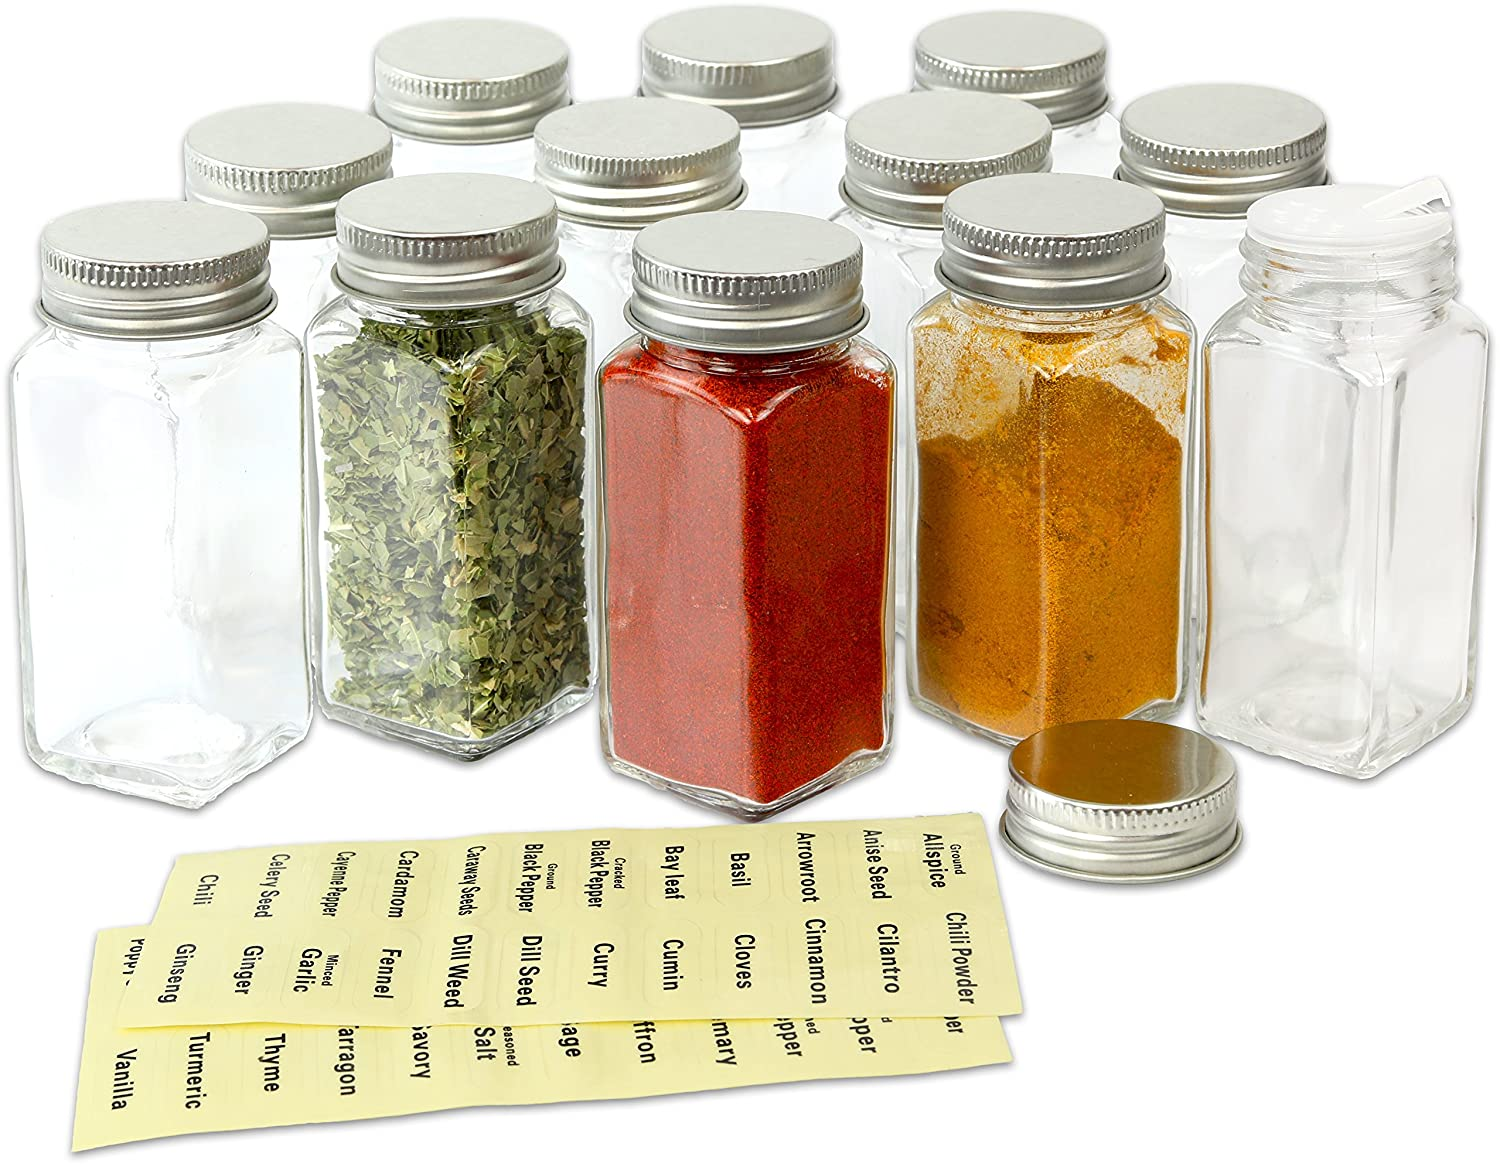 SimpleHouseware 12 Square Spice Bottles w/Label Set Simple Houseware KF-004-2